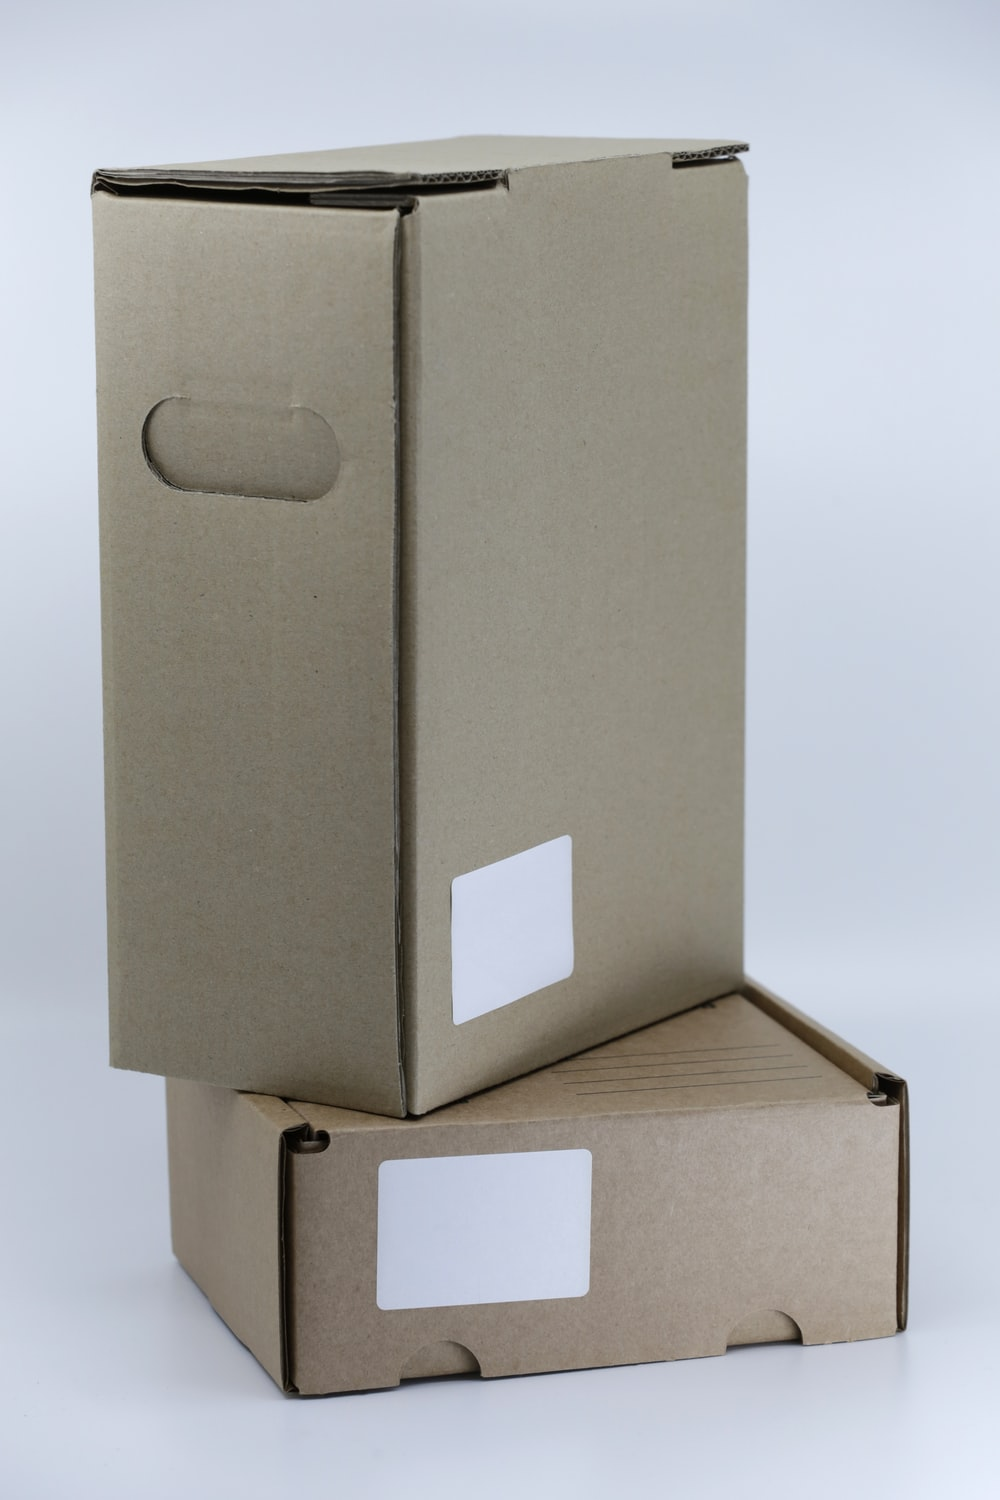 gray cardboard box on white table